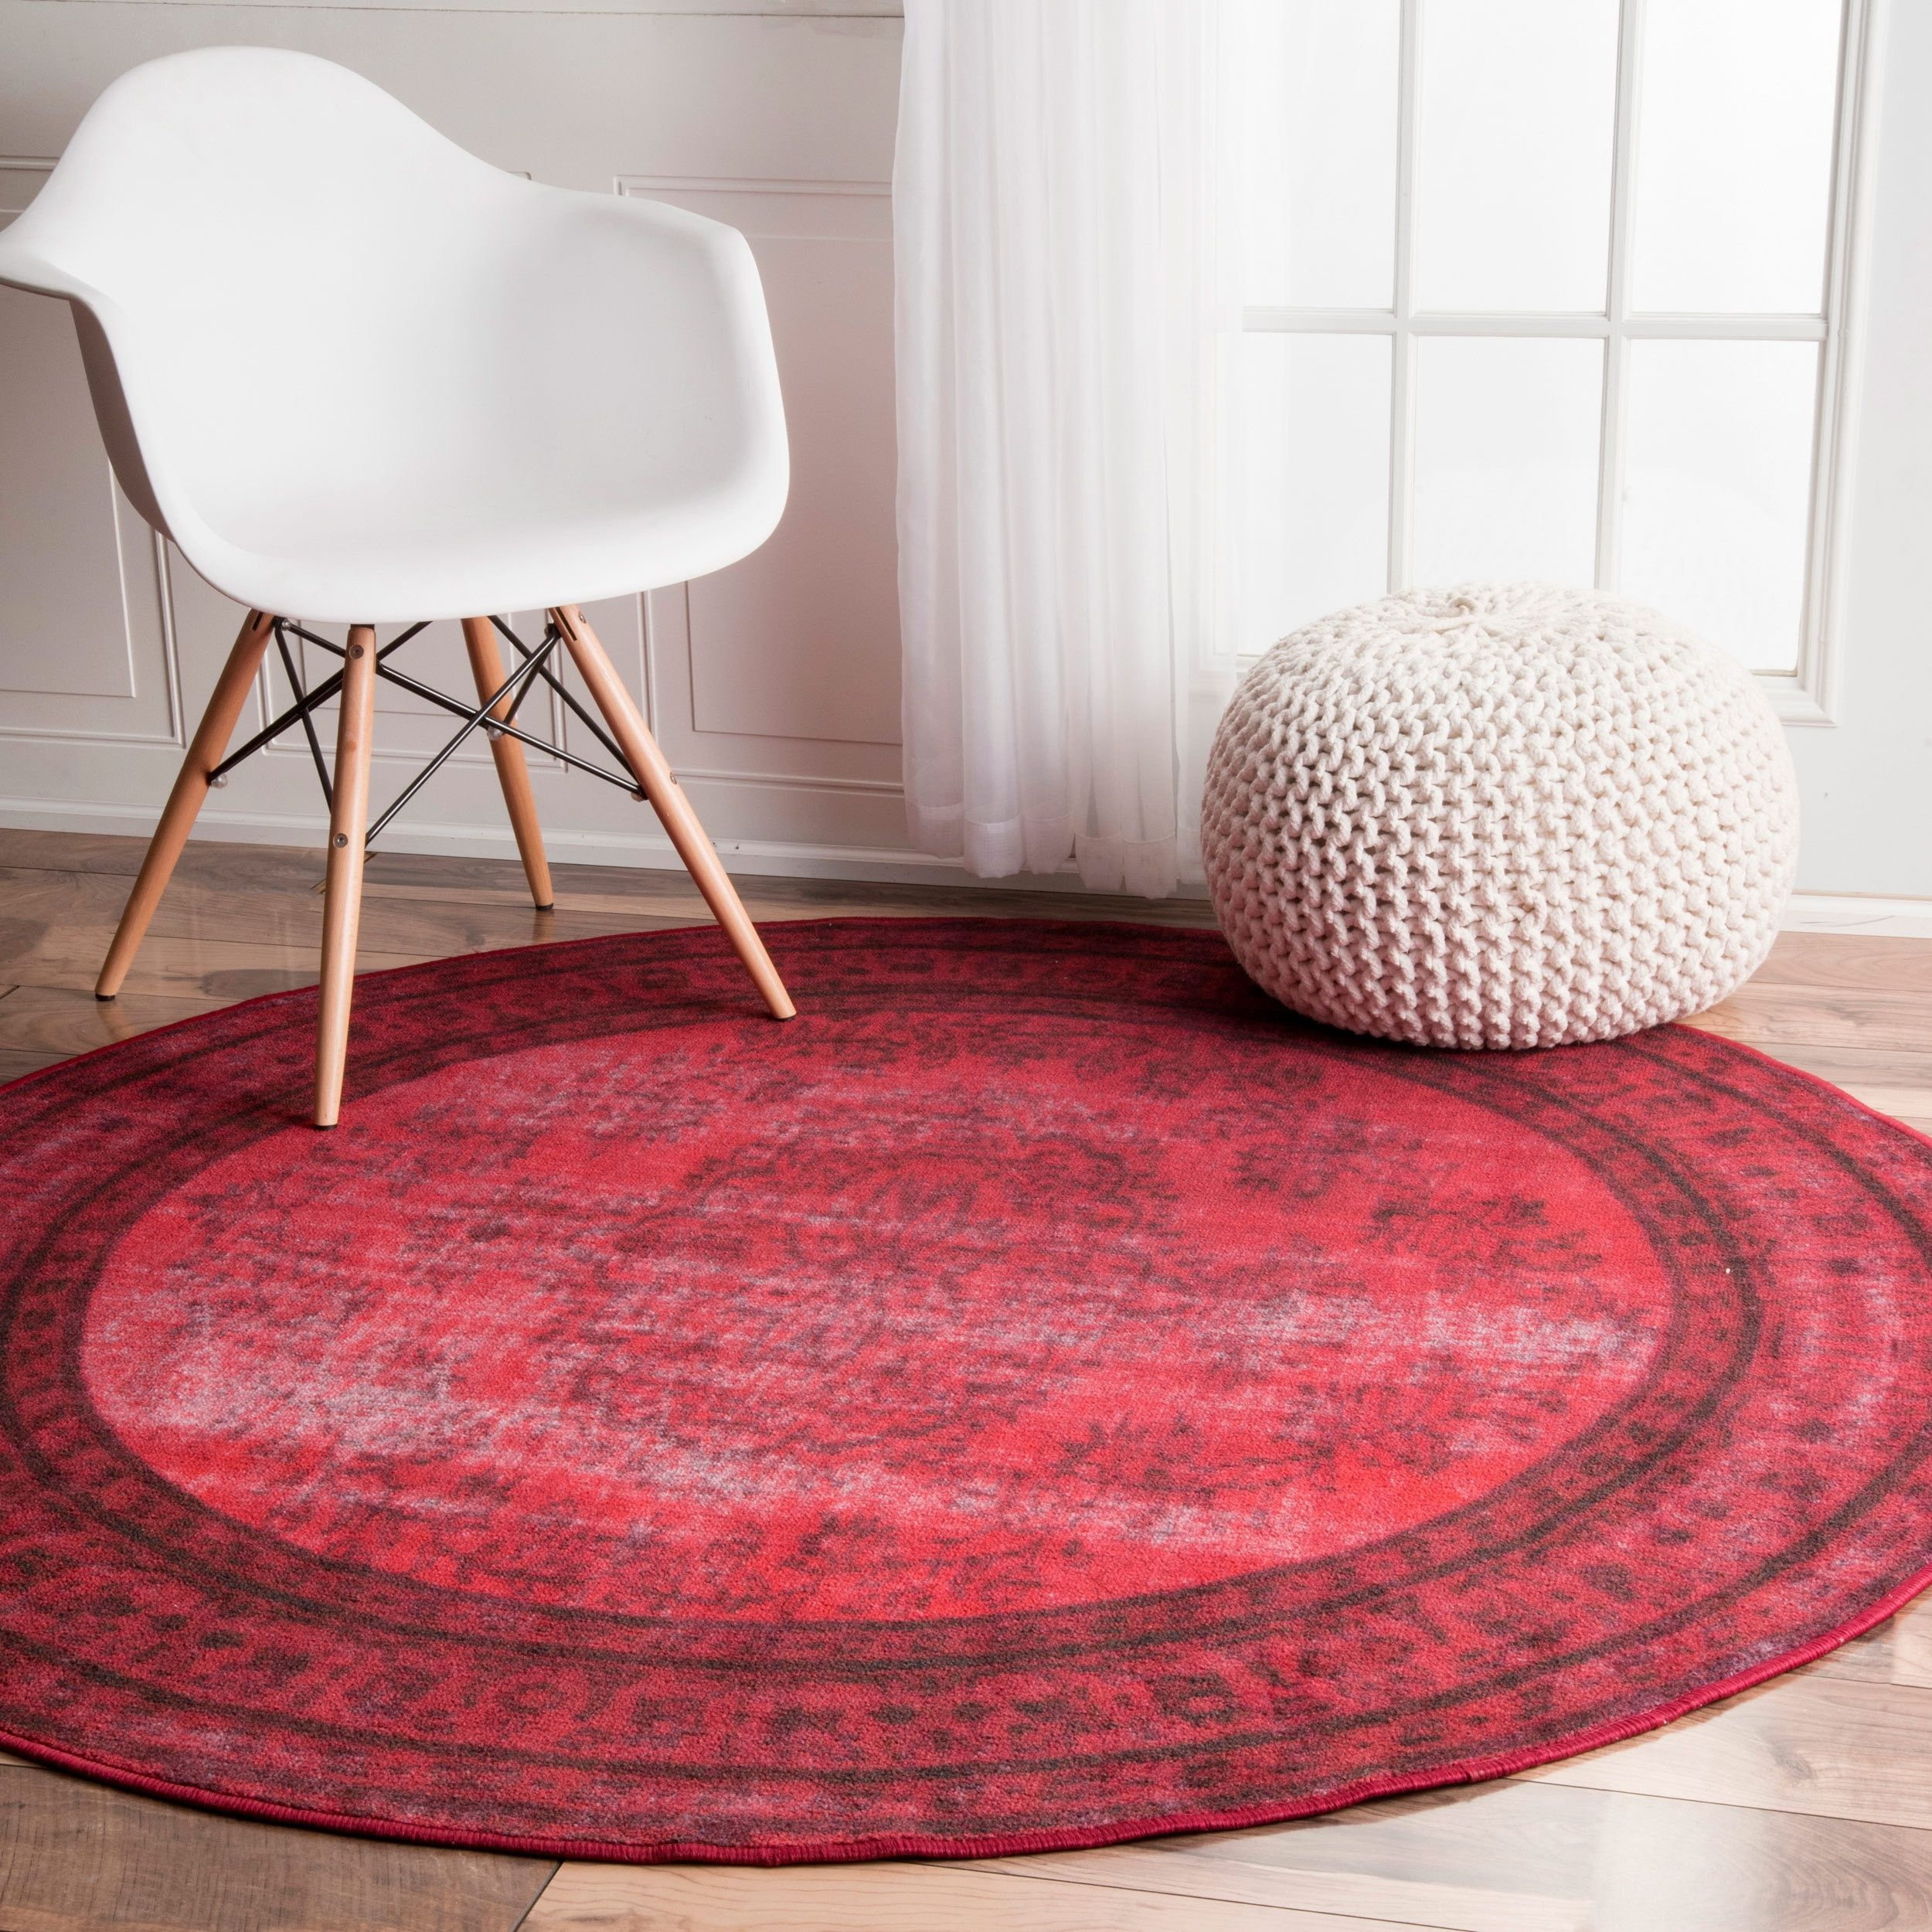 Nuloom Vintage Inspired Fancy Overdyed Red Round Rug 5